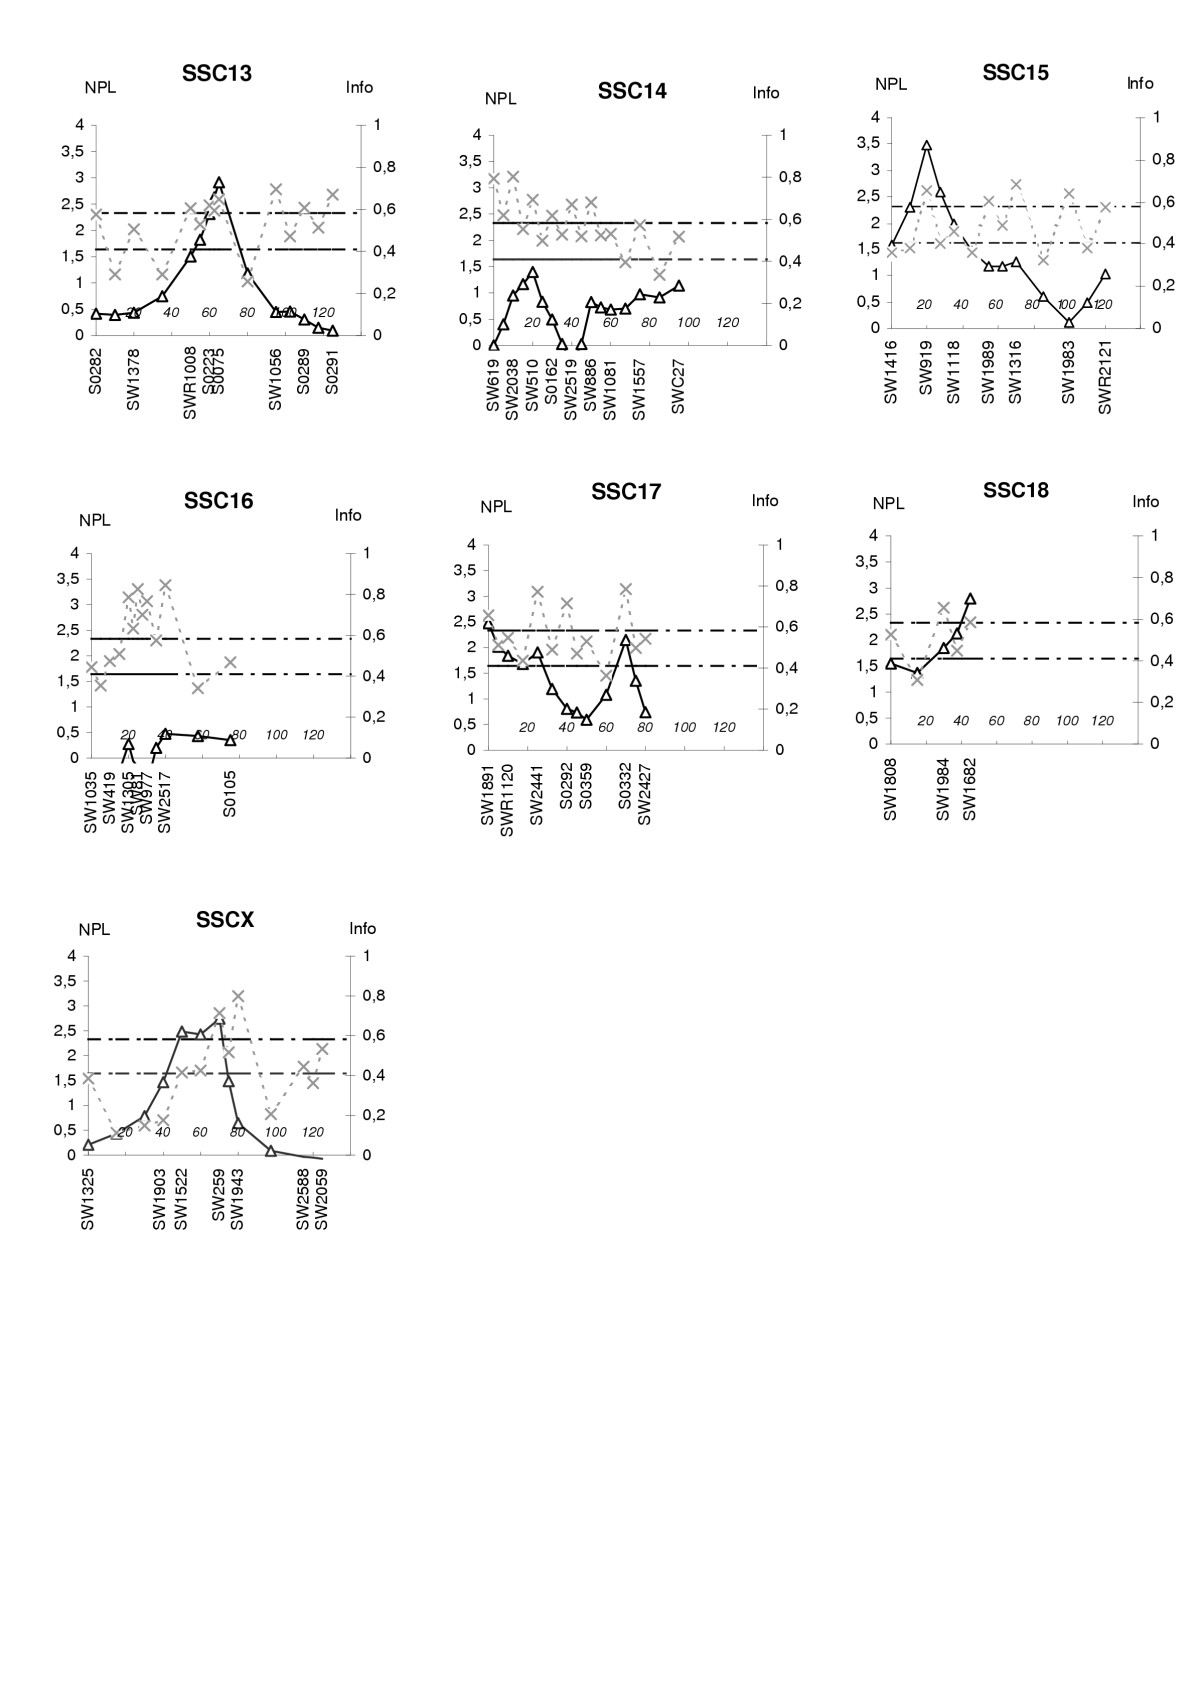 http://static-content.springer.com/image/art%3A10.1186%2F1471-2156-7-25/MediaObjects/12863_2006_Article_448_Fig2_HTML.jpg